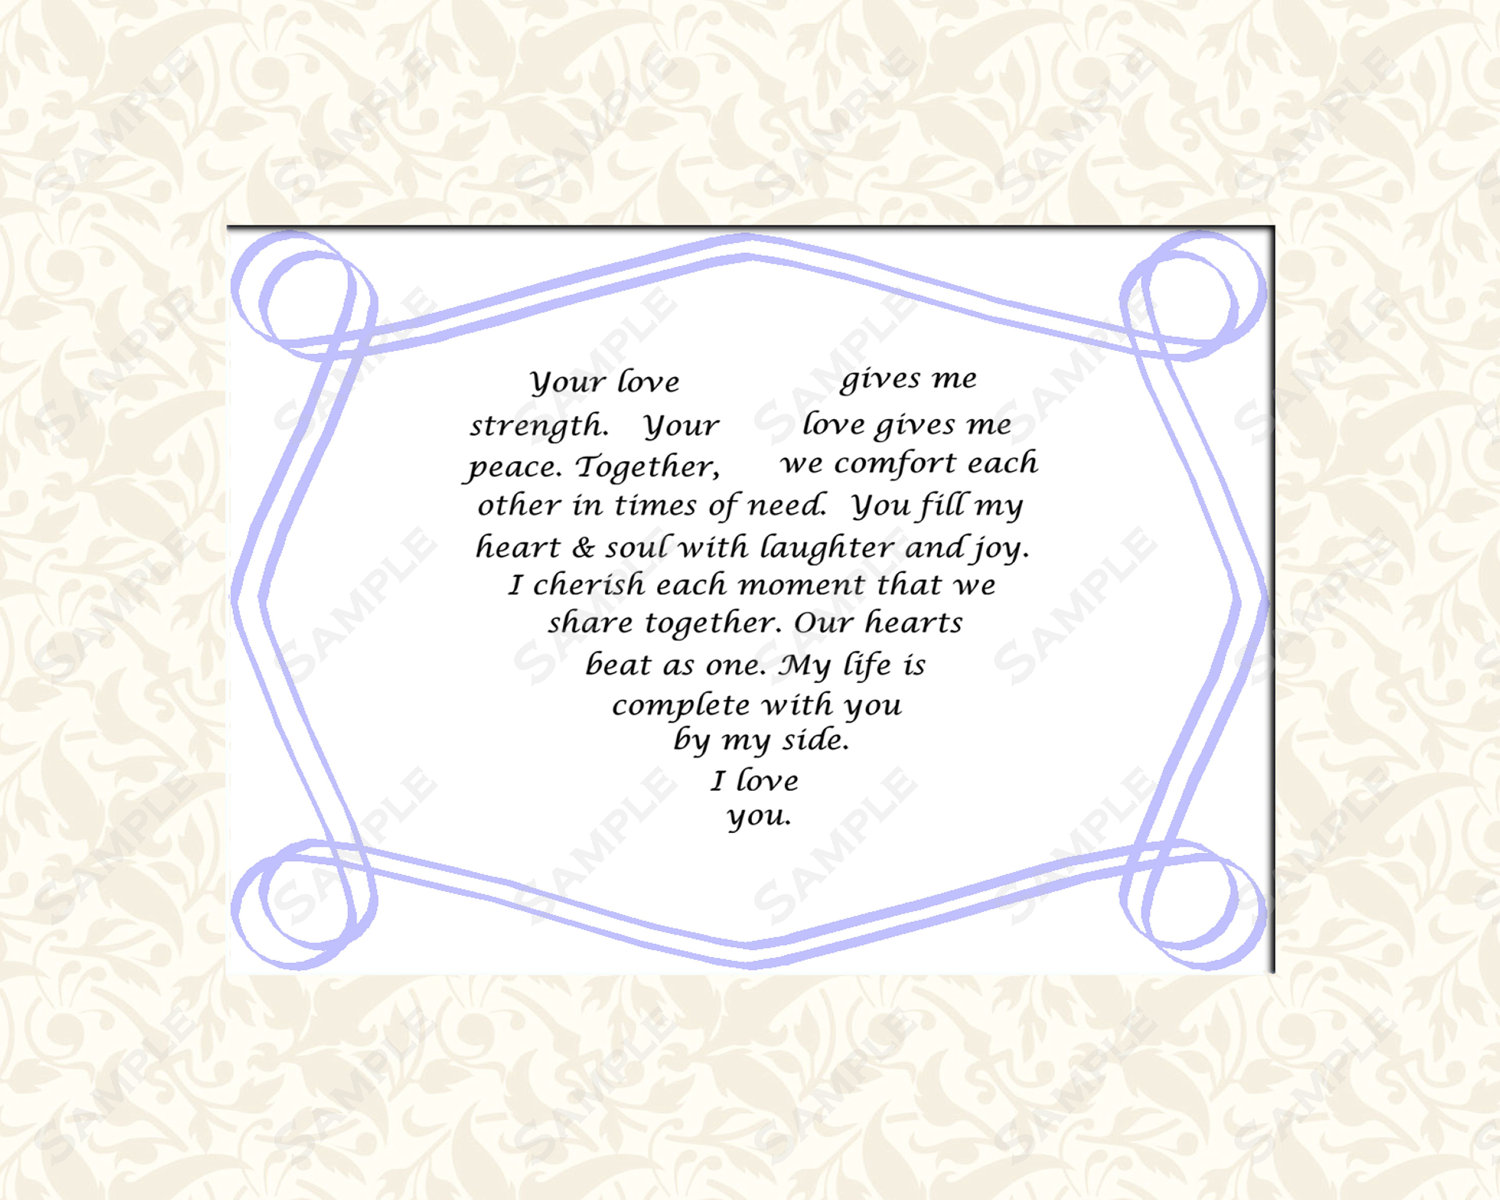 Free Love Poems And Quotes Love Wedding Poems Poems